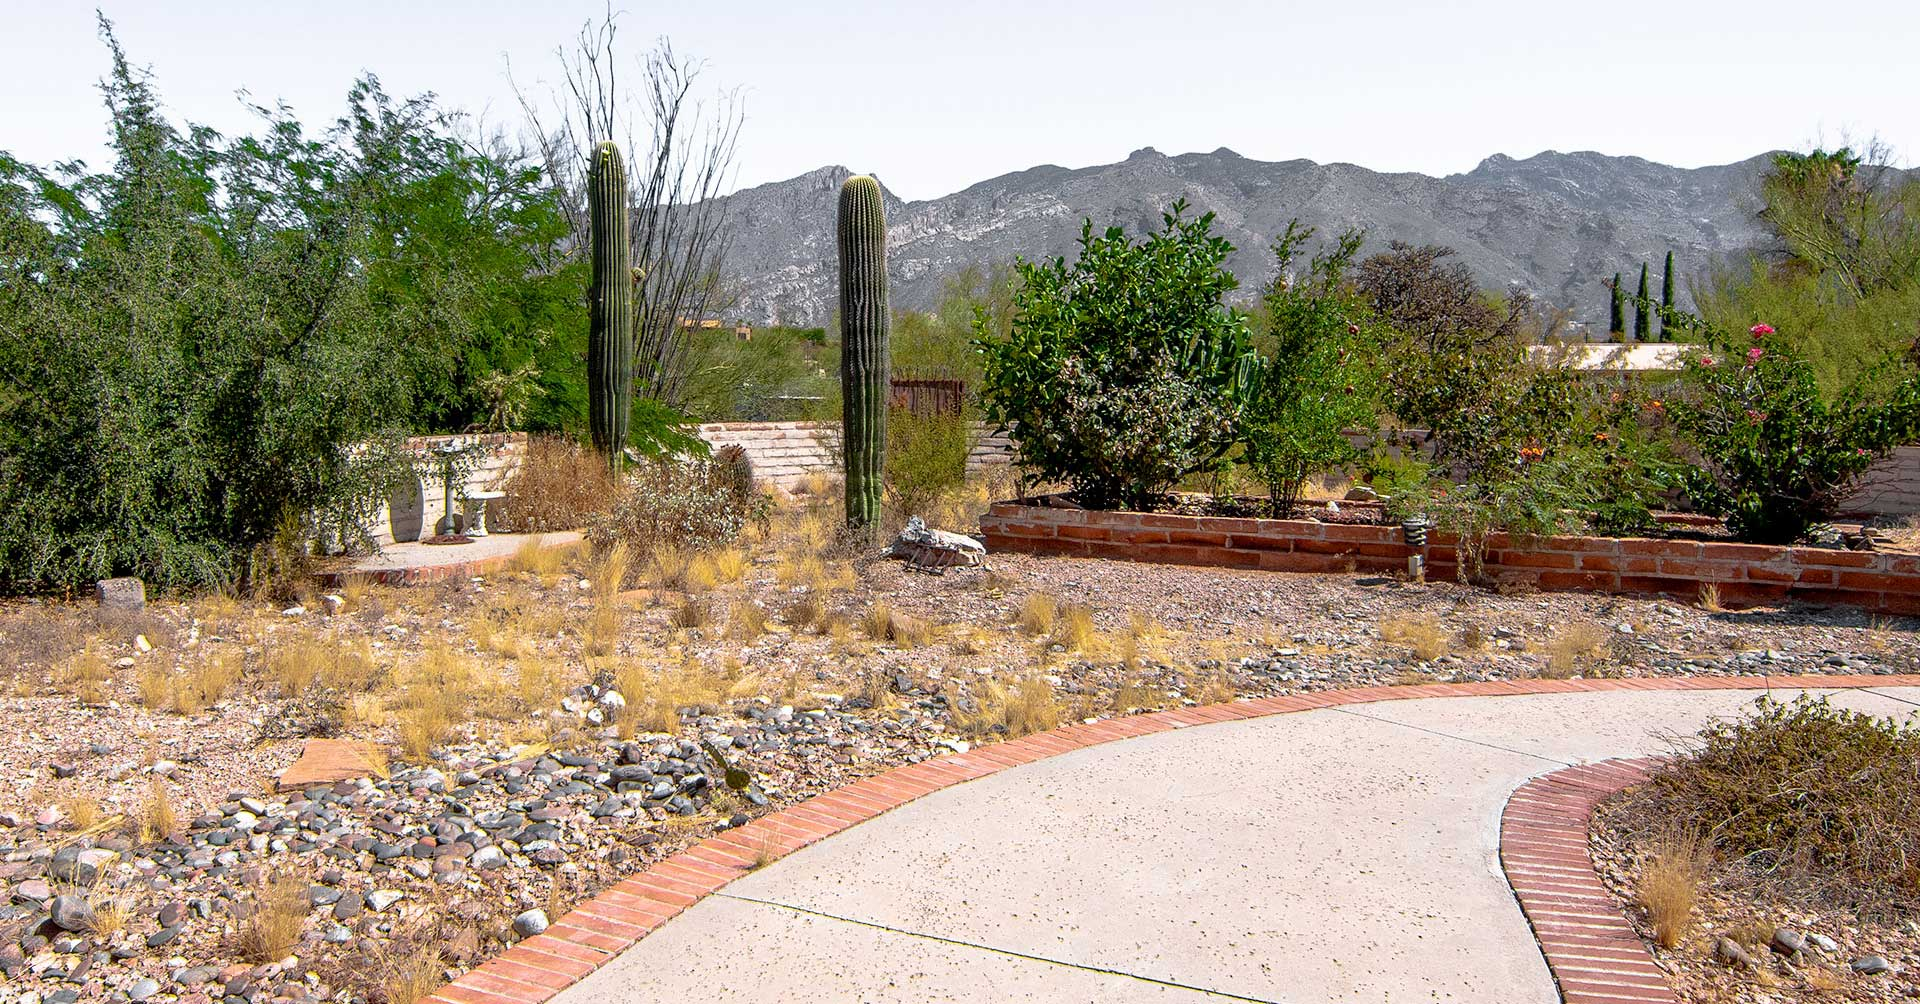 An unkempt backyard with weeds and untrimmed trees before landscaping.